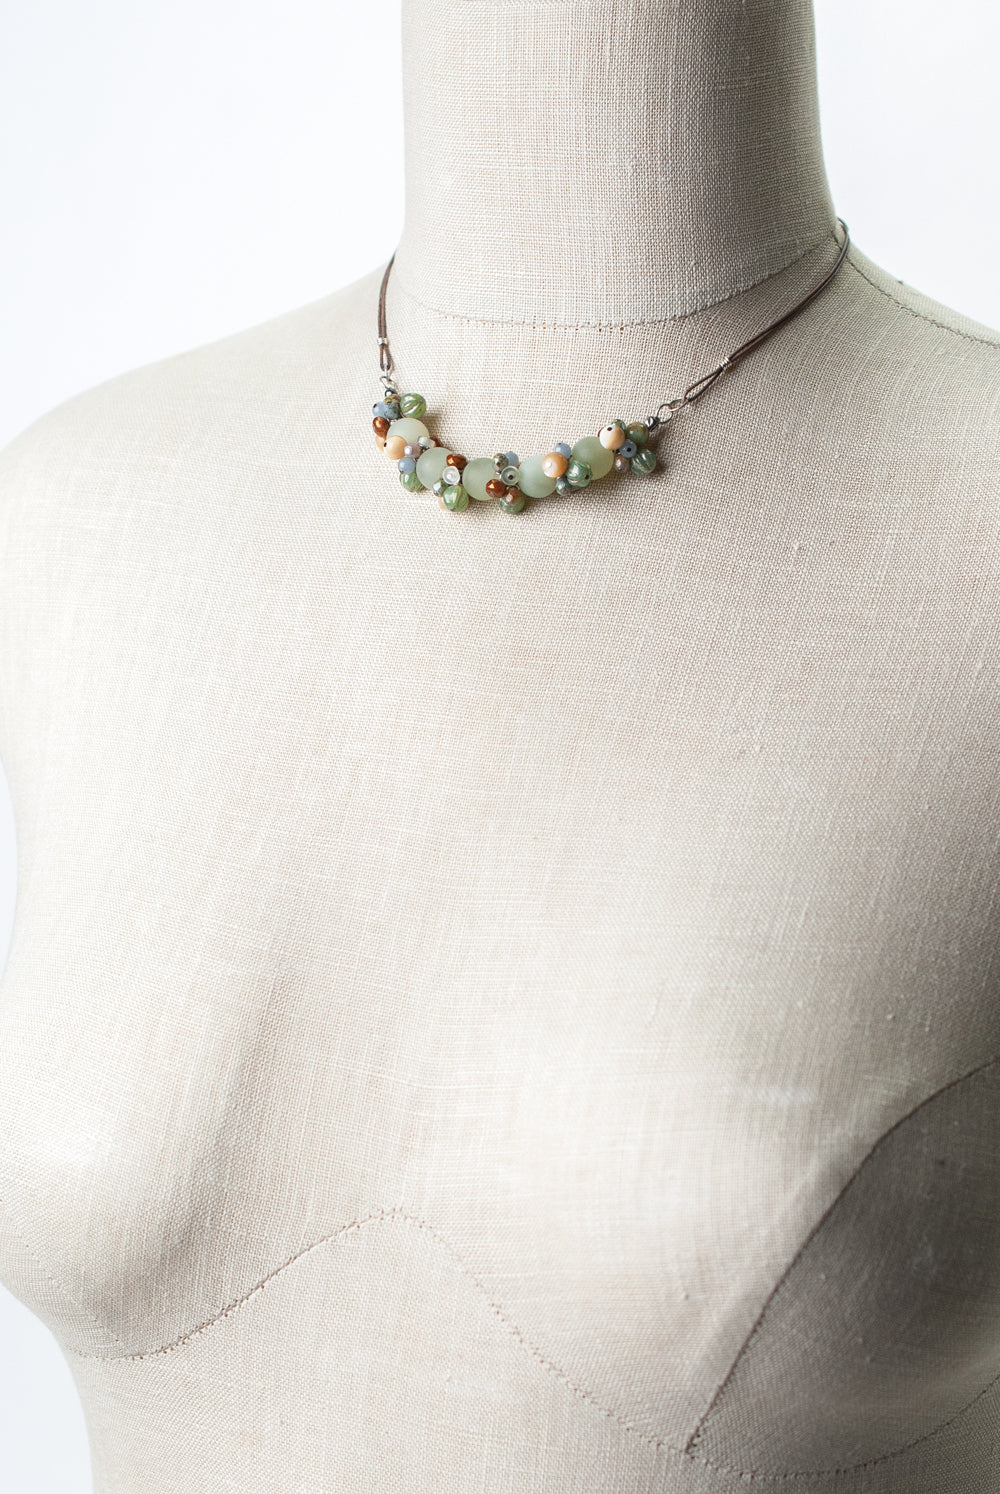 "Refresh 14.5-16.5"" Prehnite, Czech Glass, Pearl Cluster Necklace"